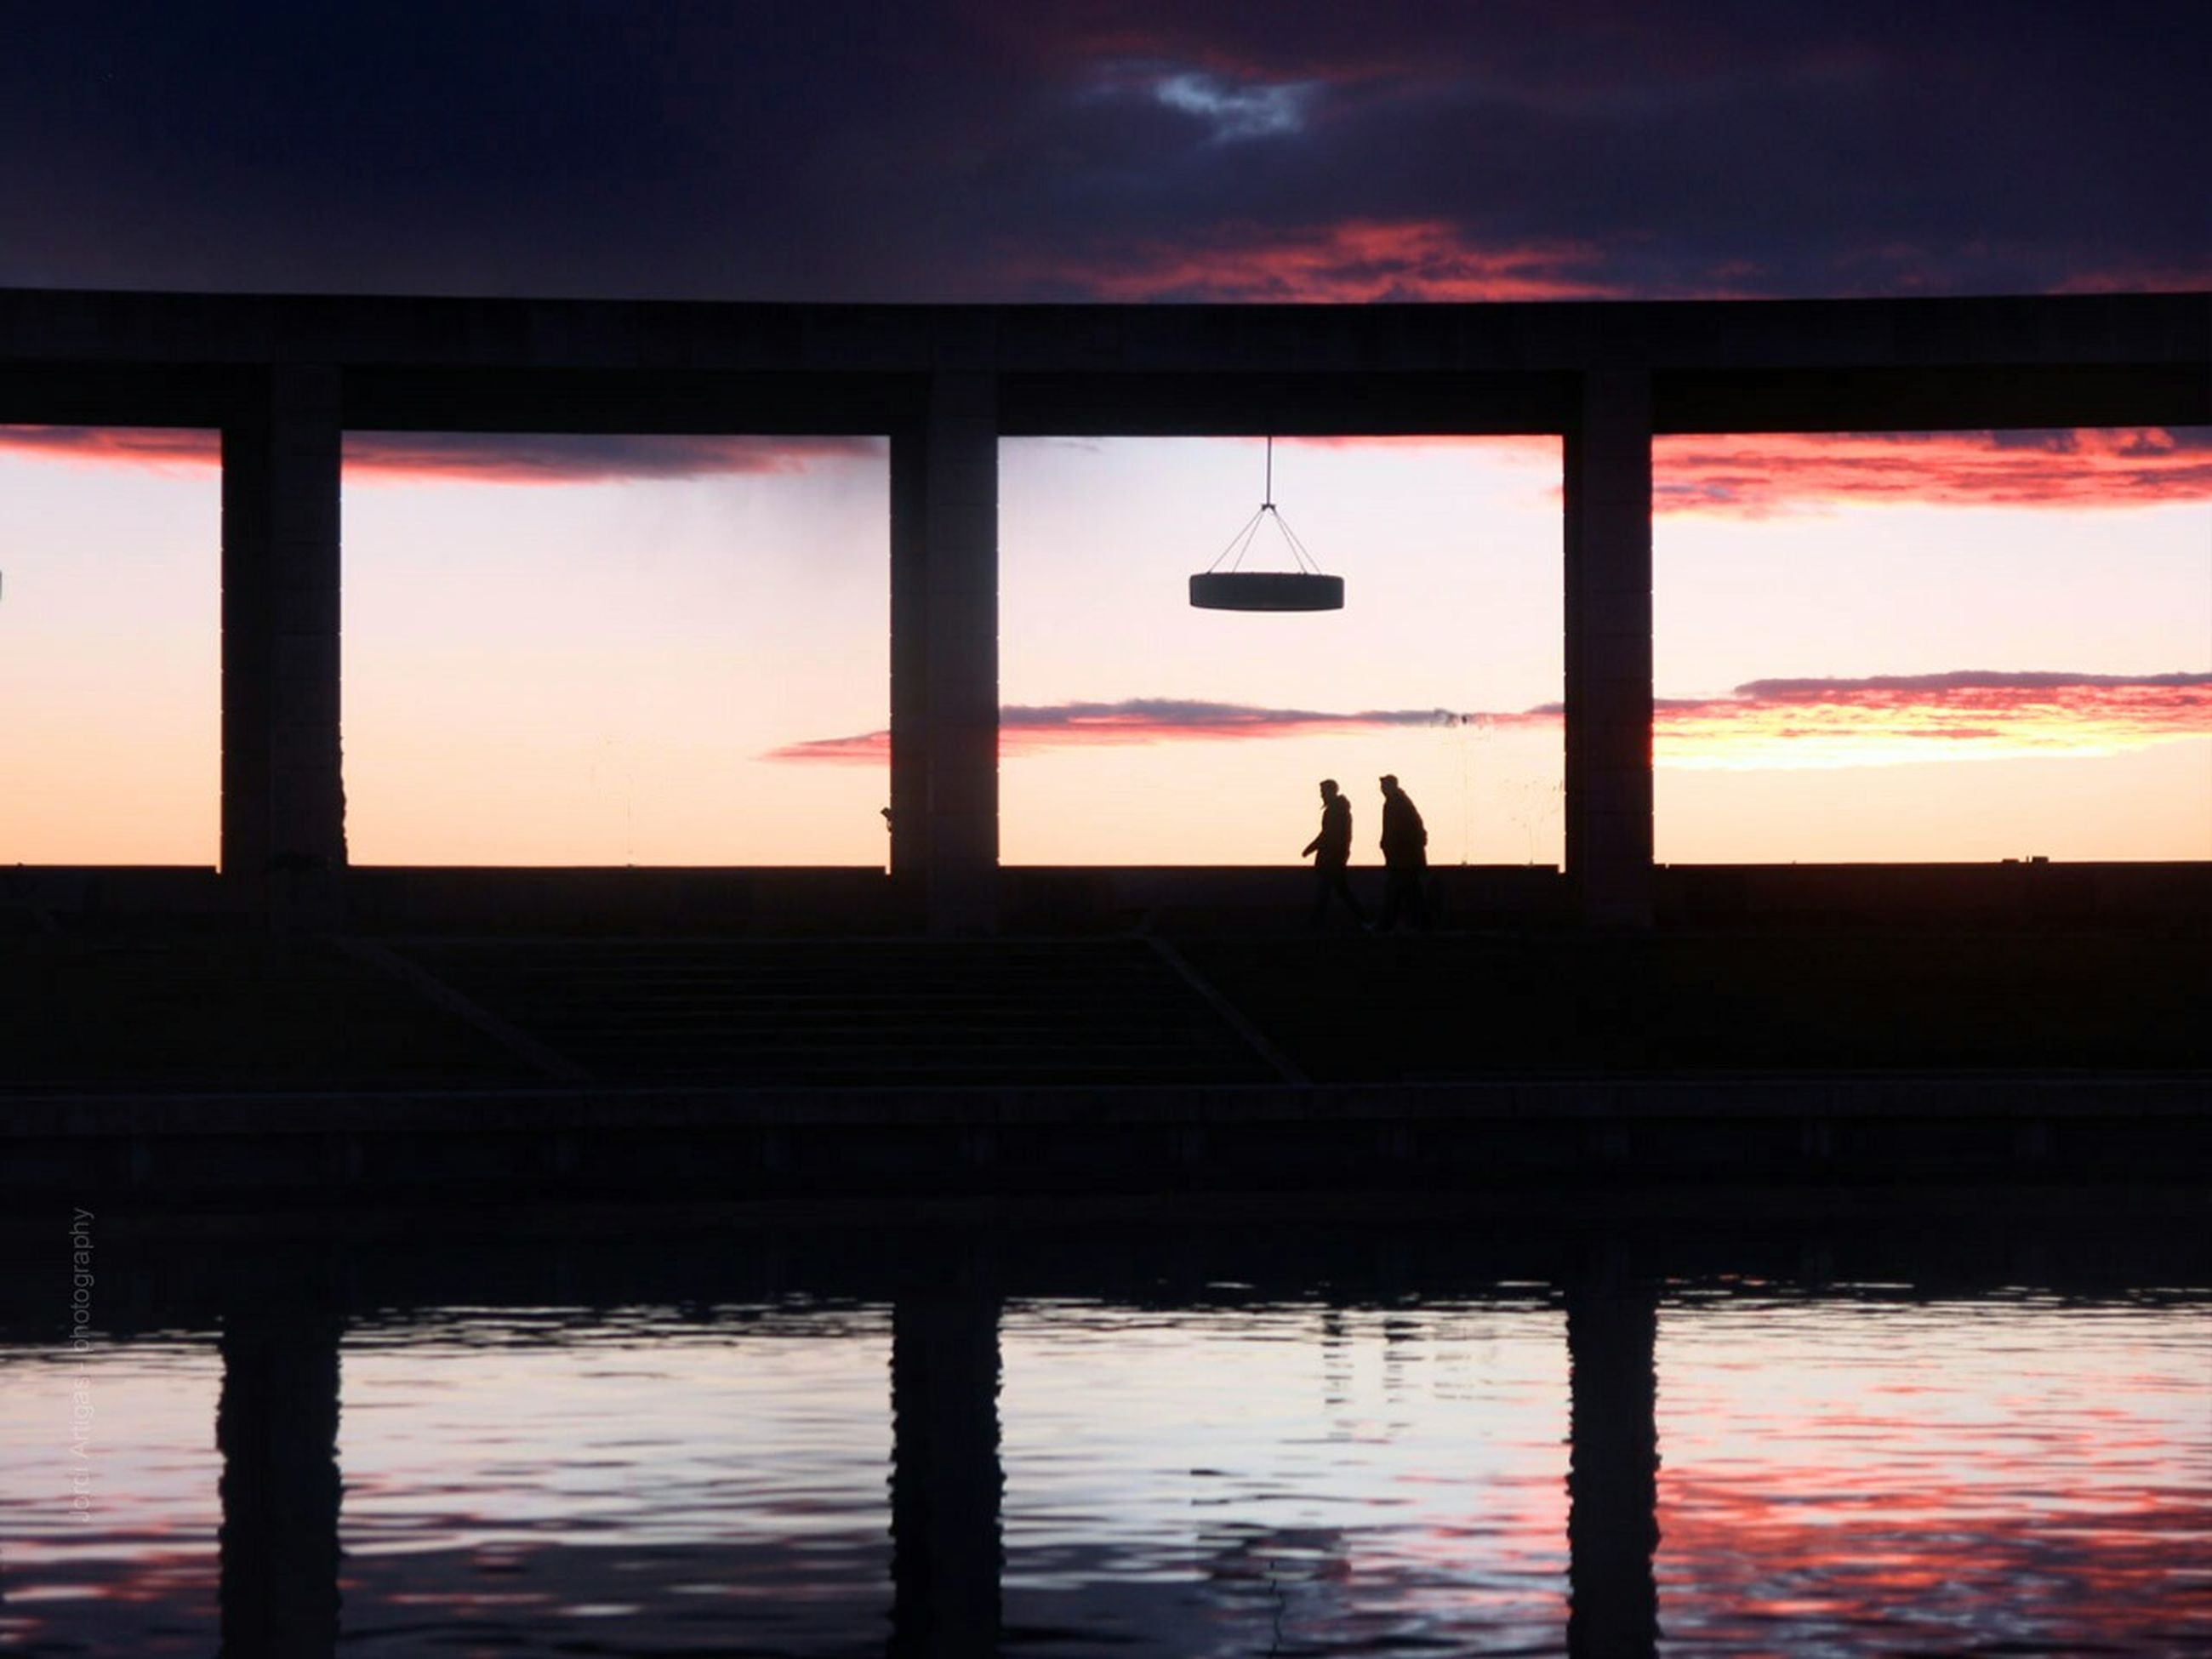 sunset, reflection, sky, water, built structure, silhouette, no people, nature, architecture, city, outdoors, day